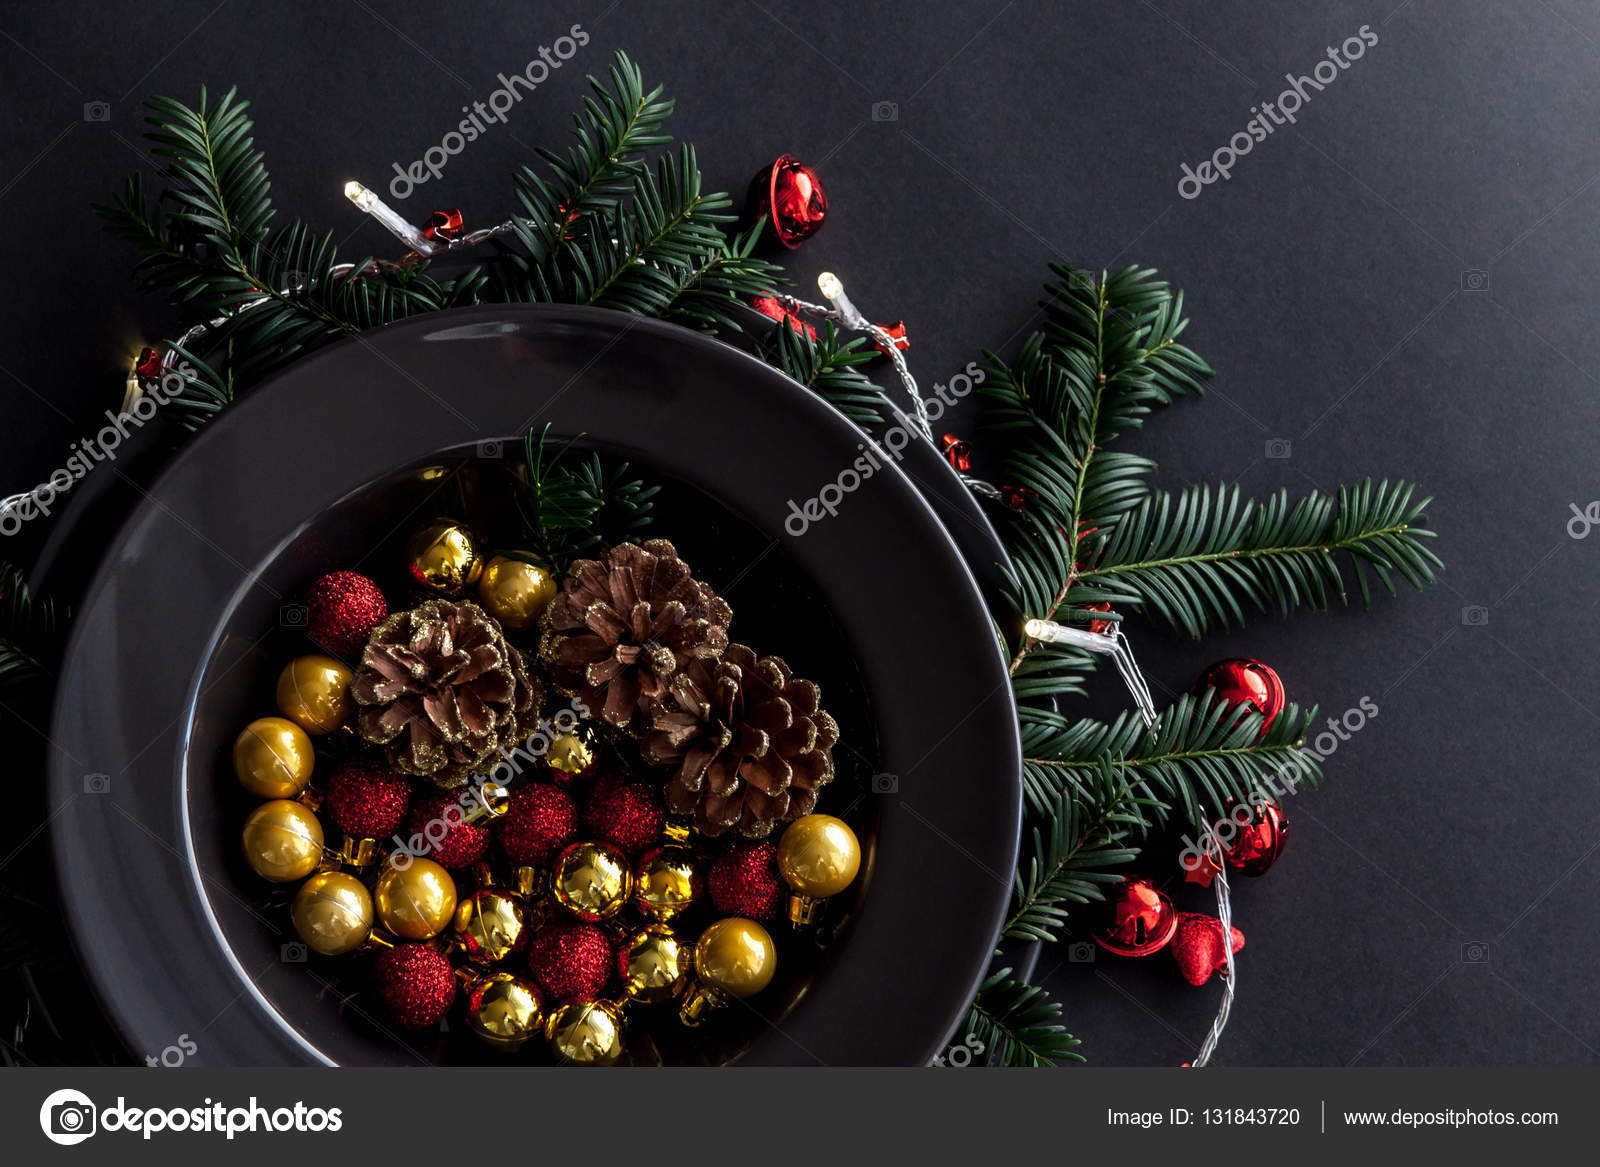 christmas decorations in the black plate on the dark background with some spruce twigsredgold balls and cones inside and christmas light around